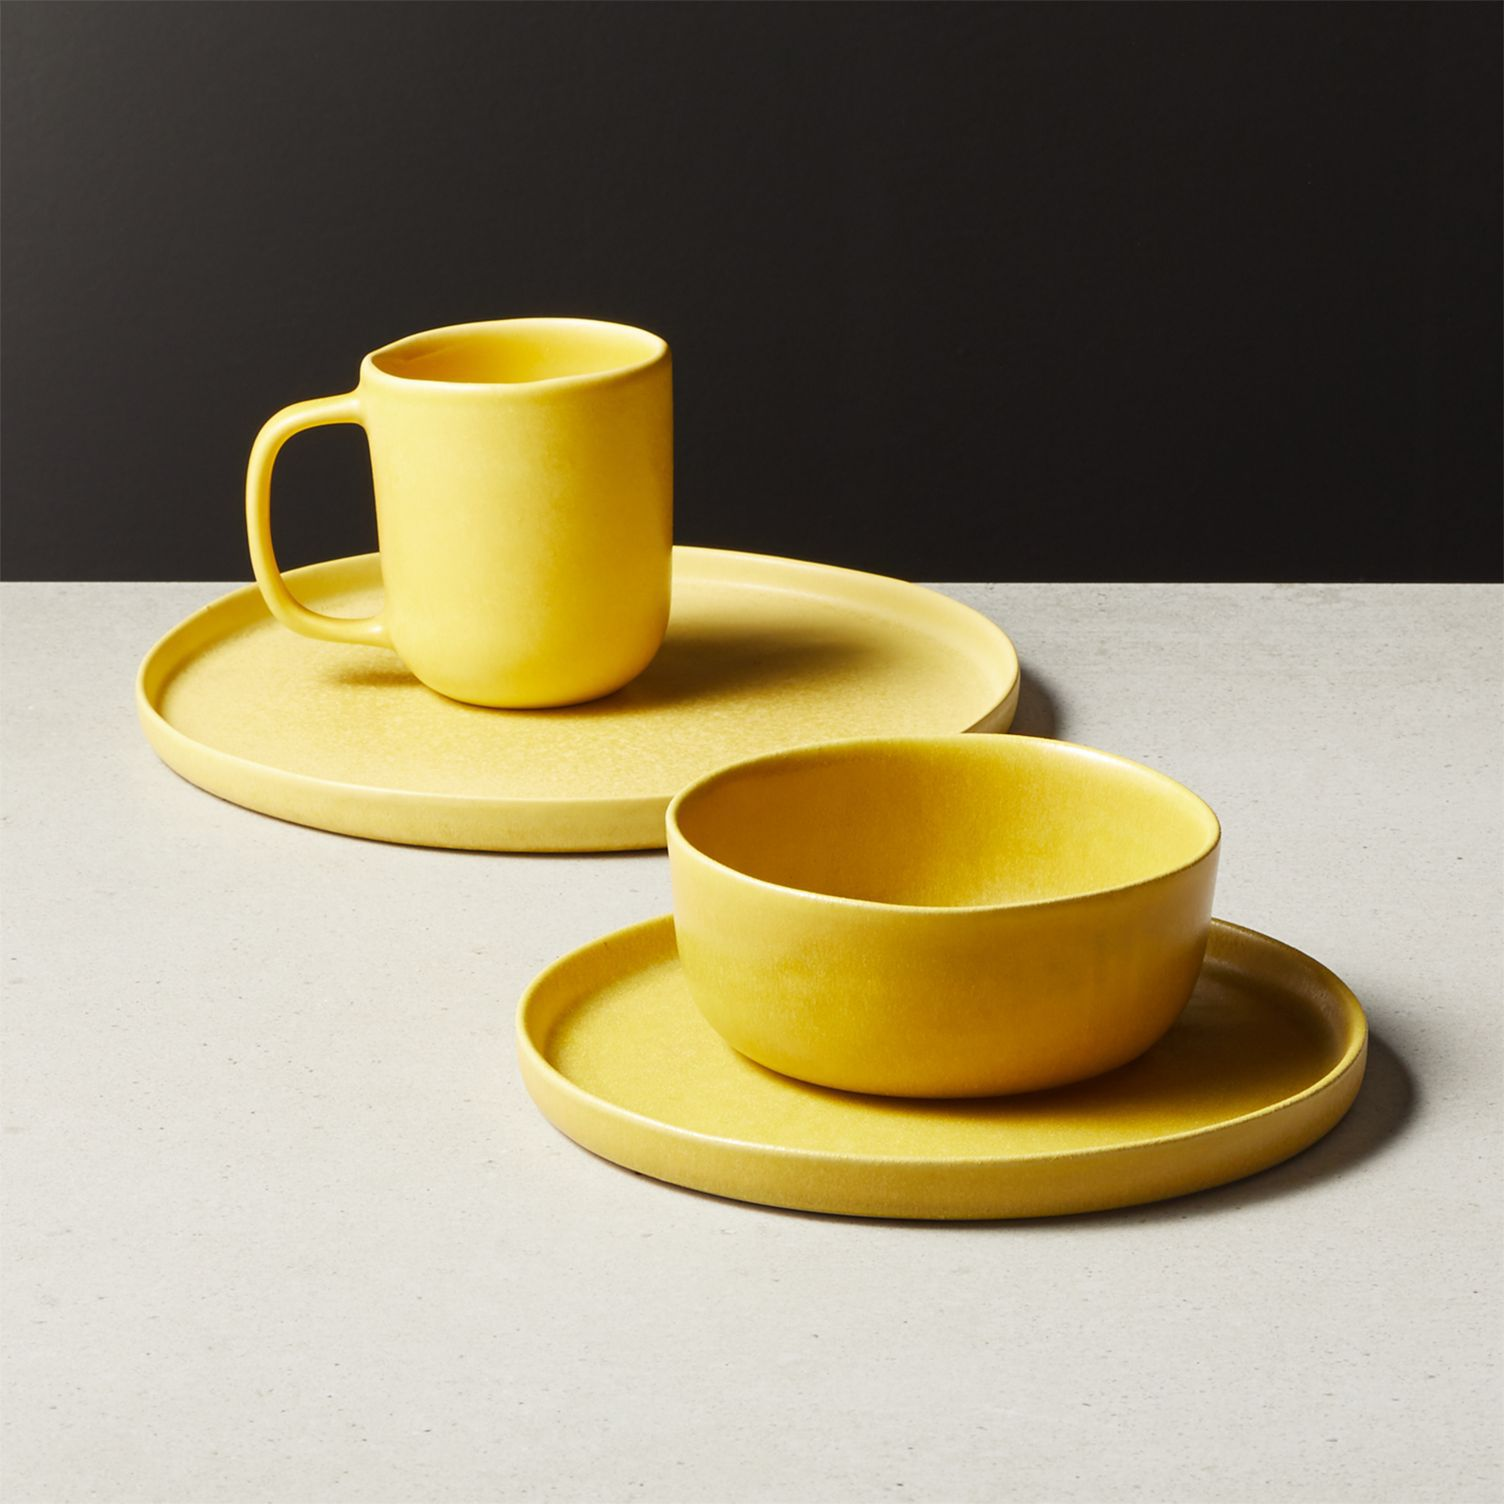 A four piece setting of yellow ceramic tableware by CB2.